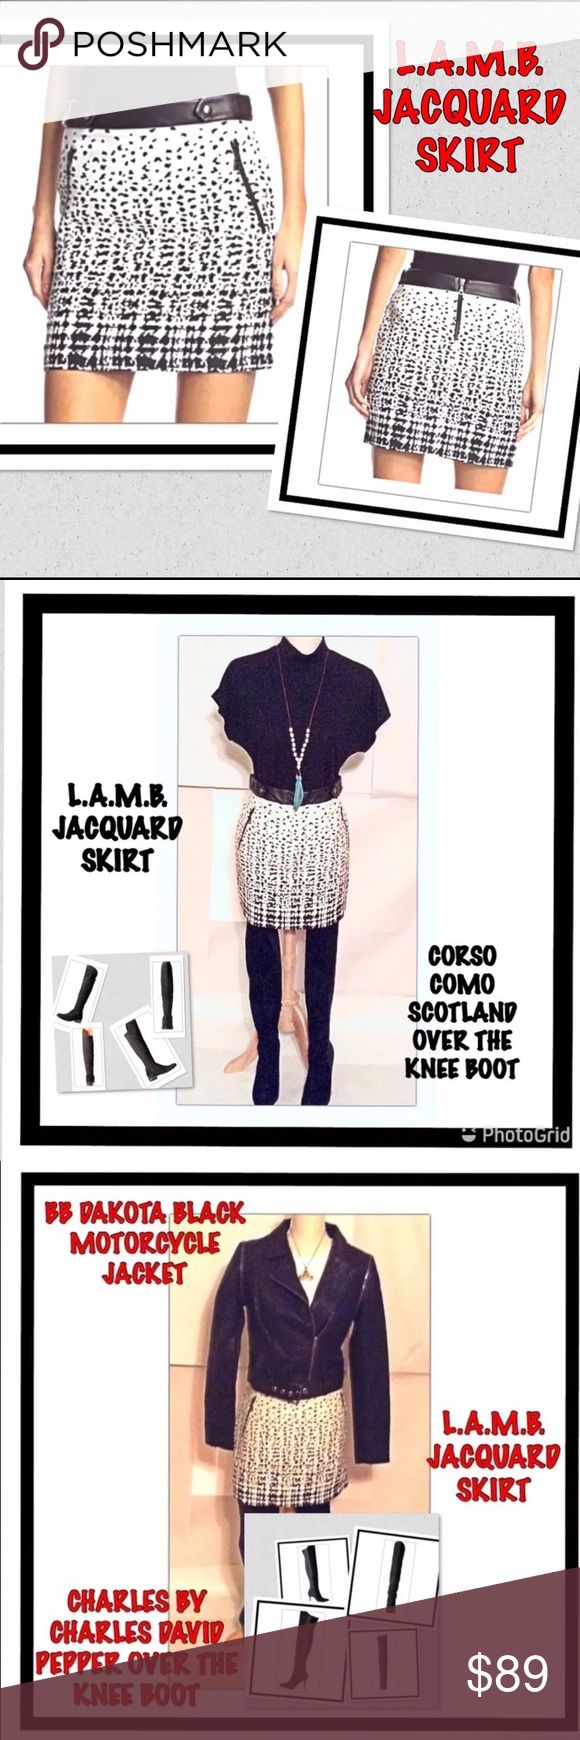 "L.A.M.B. Jacquard Black And White Mini Skirt L.A.M.B. black and white jacquard mini skirt. Size 8. New with tags. Edgy two-tone jacquard mini skirt with leather waistband and snap tabs. Asymmetrical zip pockets. Waist to hemline: 17"". 100% leather waistband.  Priced to sell. No trades. L.A.M.B. Skirts Mini"